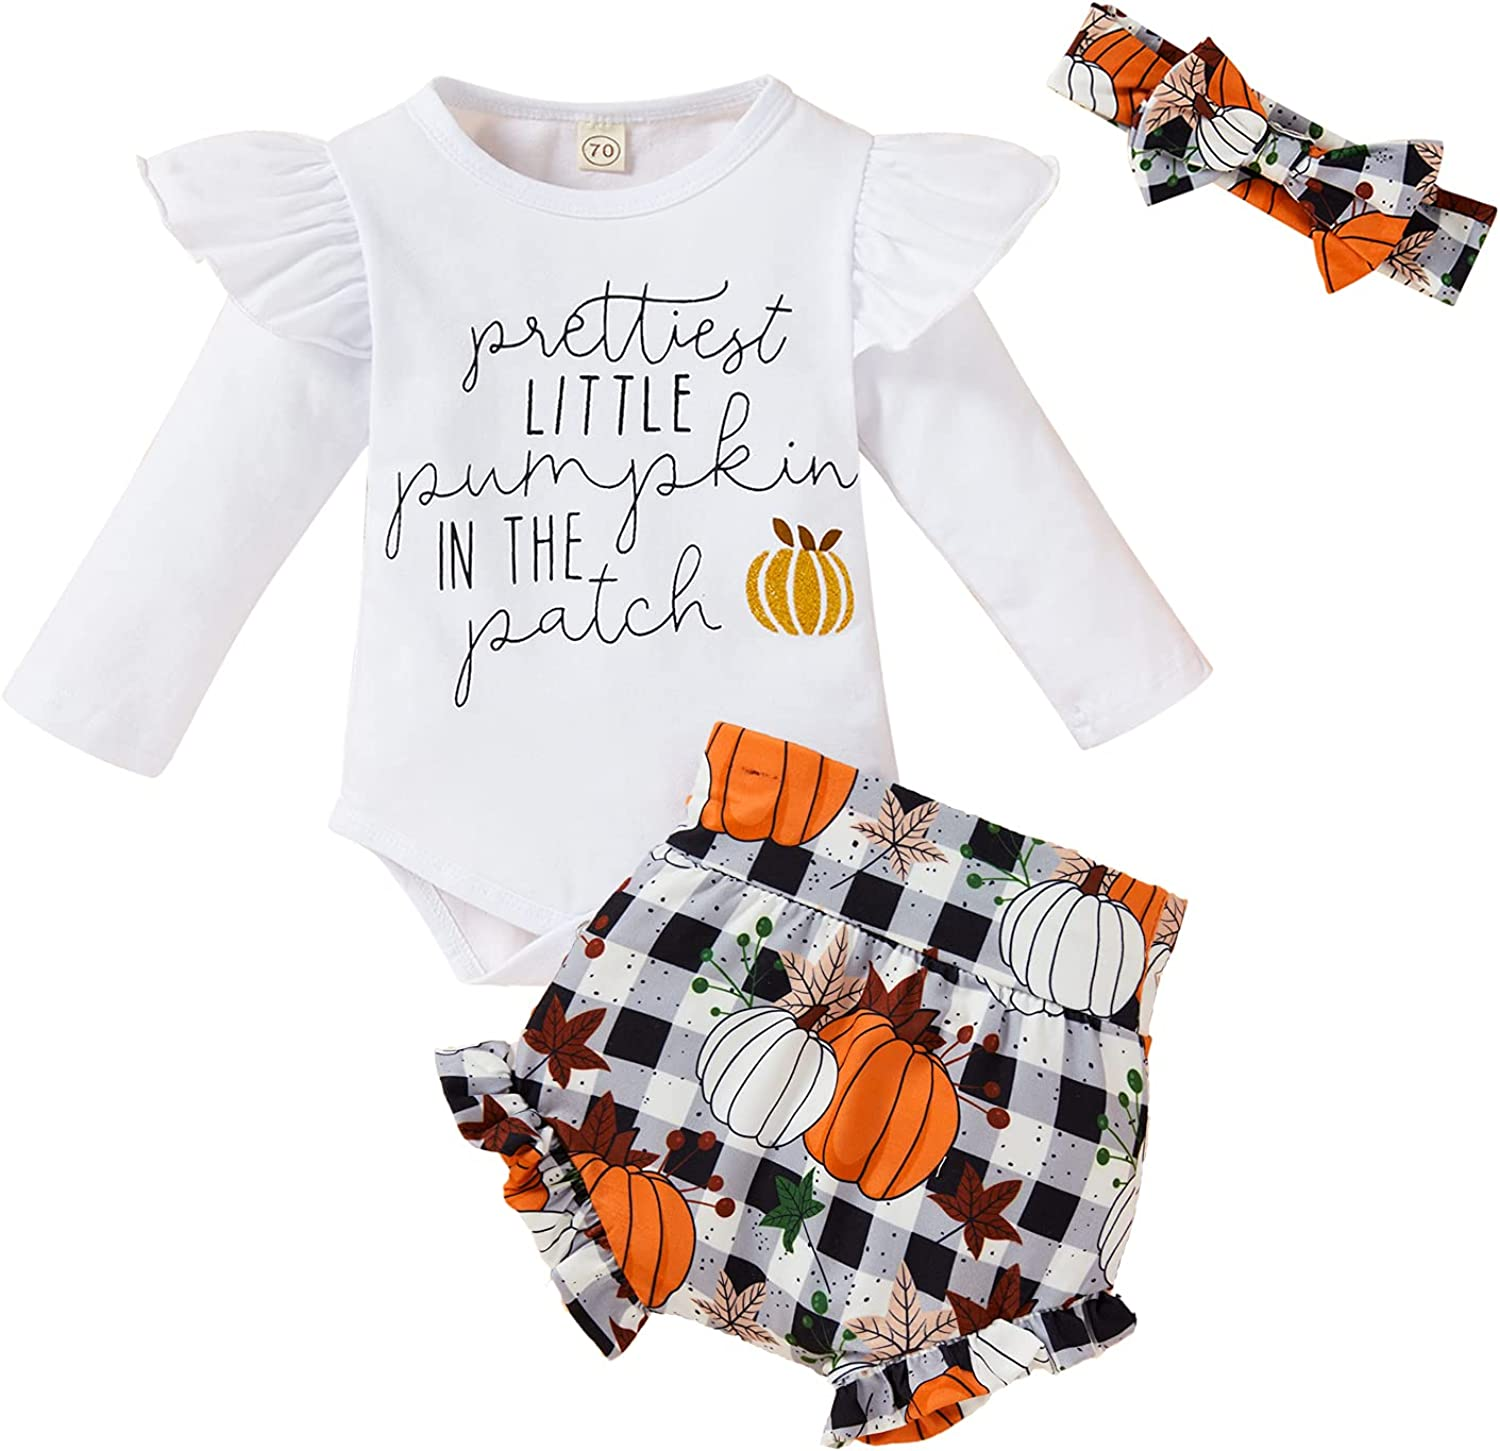 Newborn Baby Girls Halloween Outfits Ruffle Long Sleeve Romper Matching Pumpkin Checked Shorts 3pcs Toddler Baby Clothes Sets